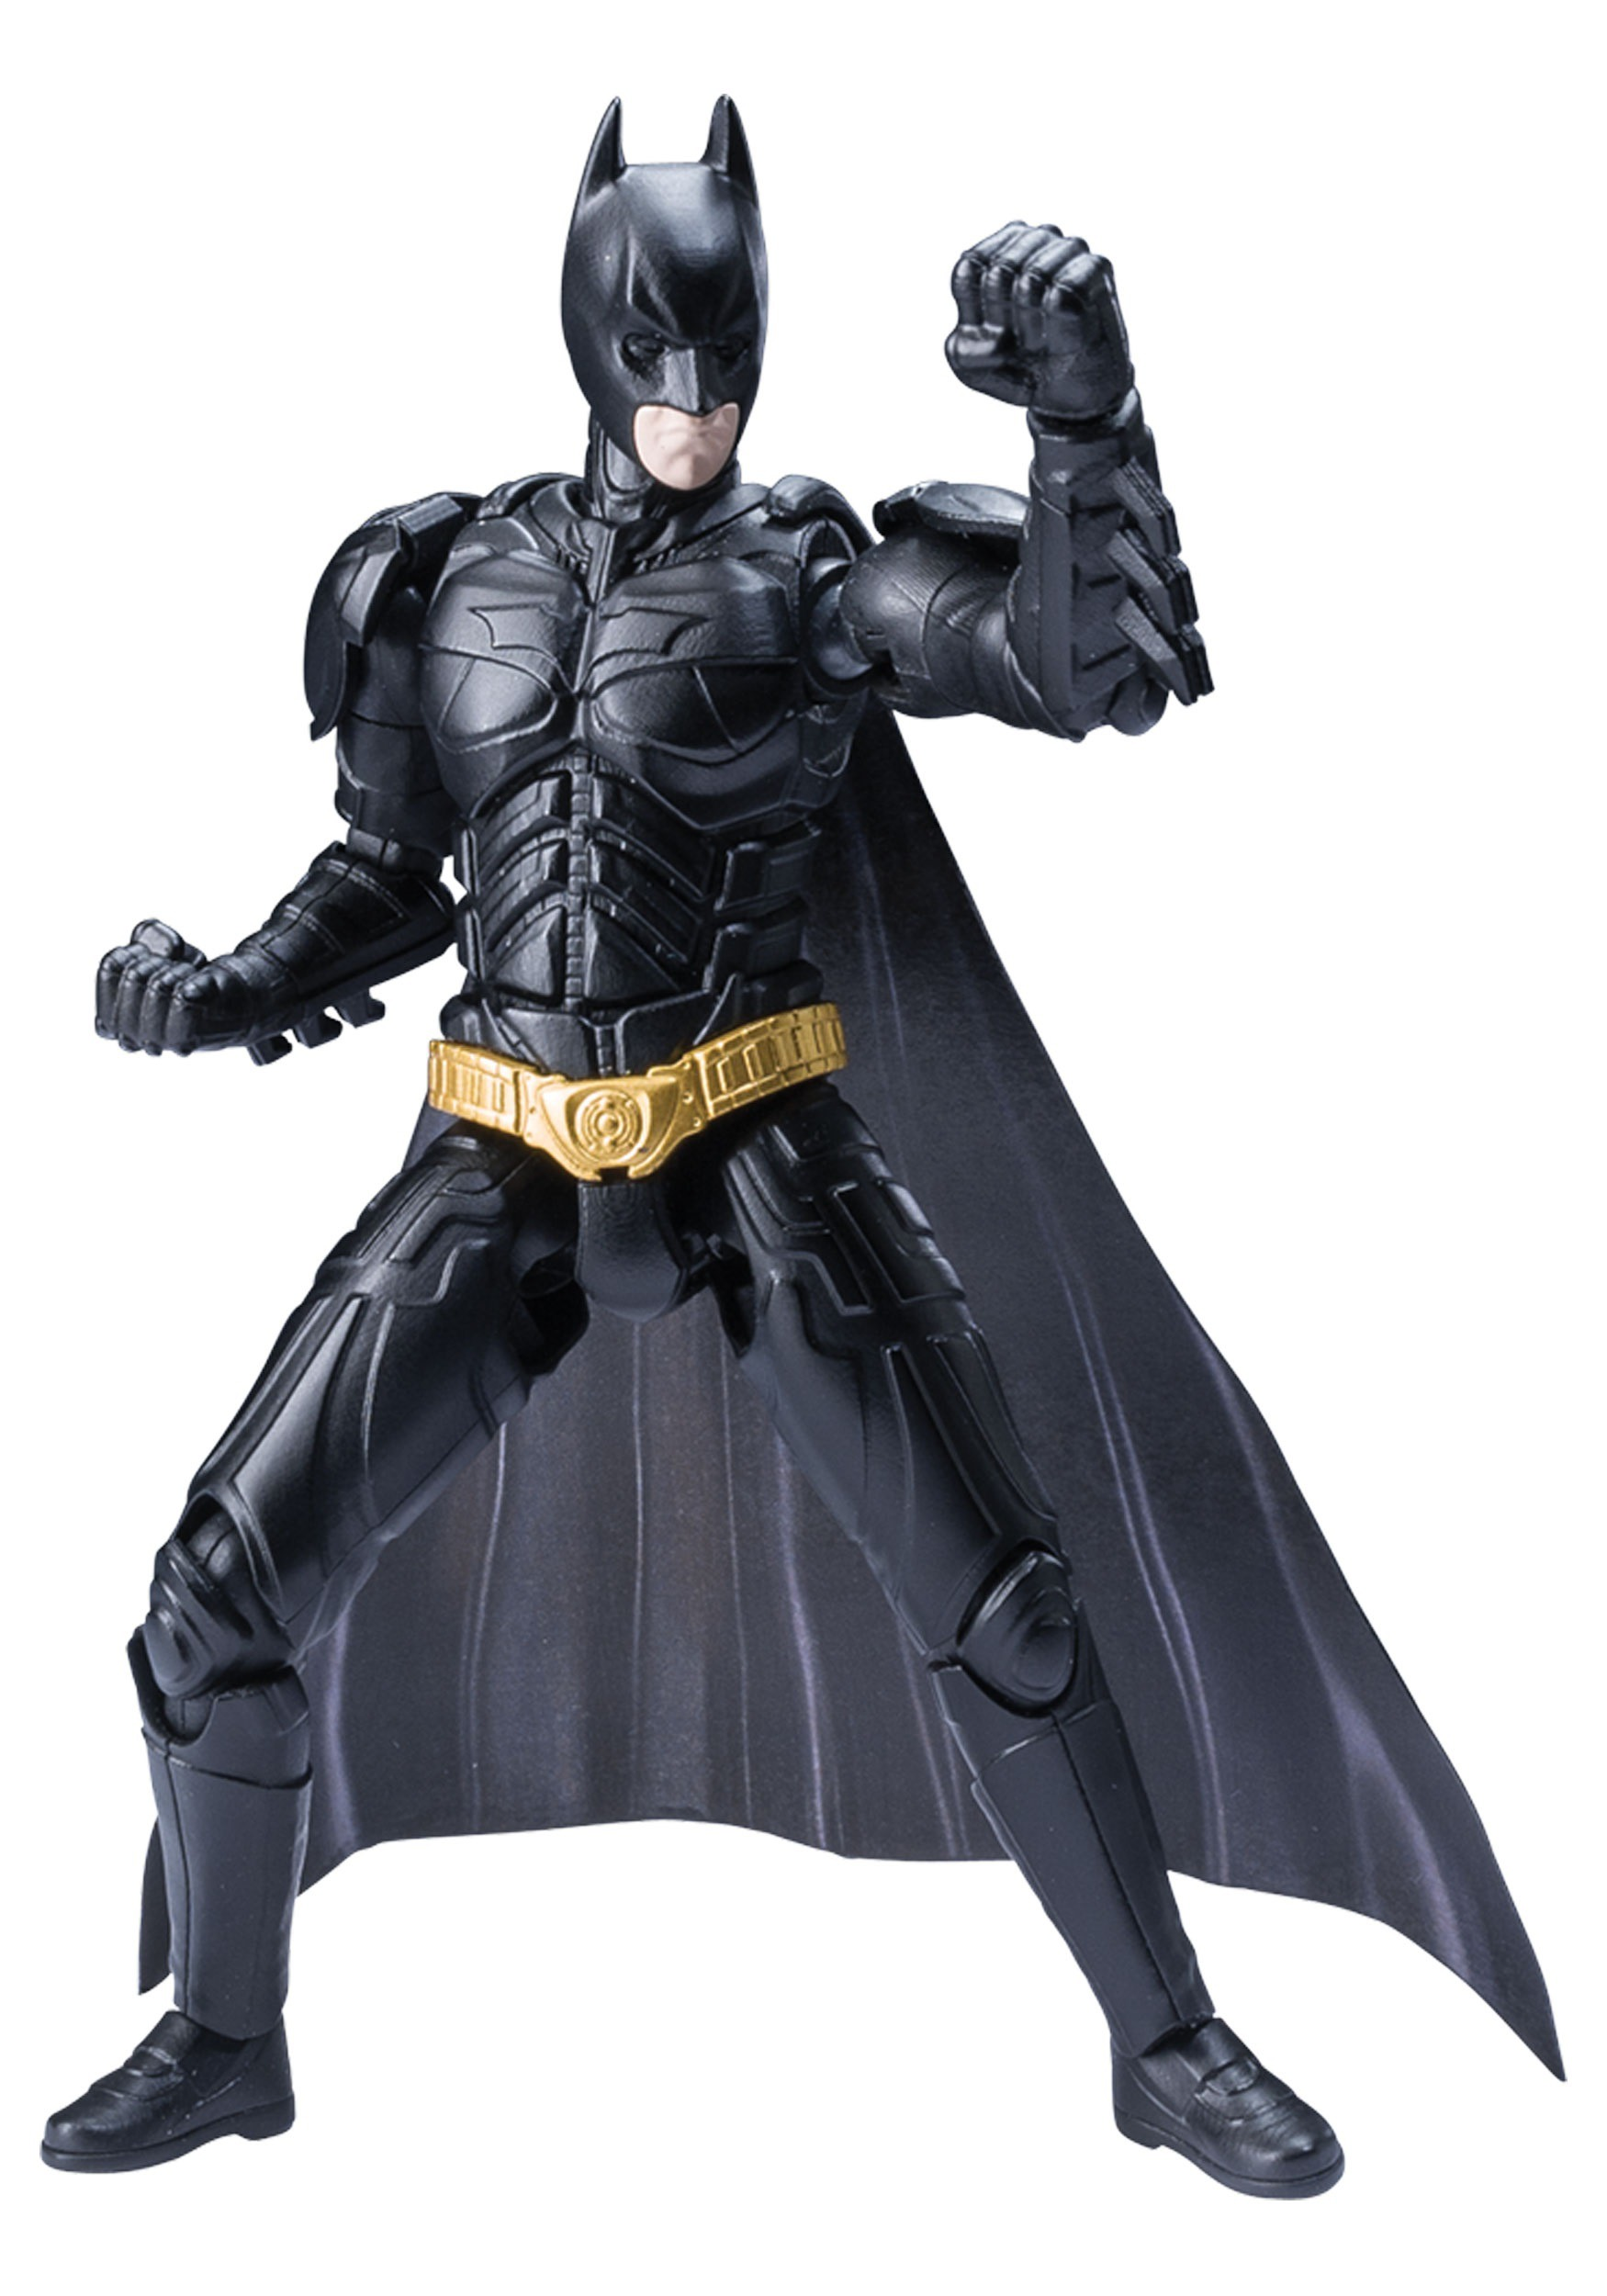 Batman Dark Knight Rises SpruKits Level 2 Model Kit EEDBA35671